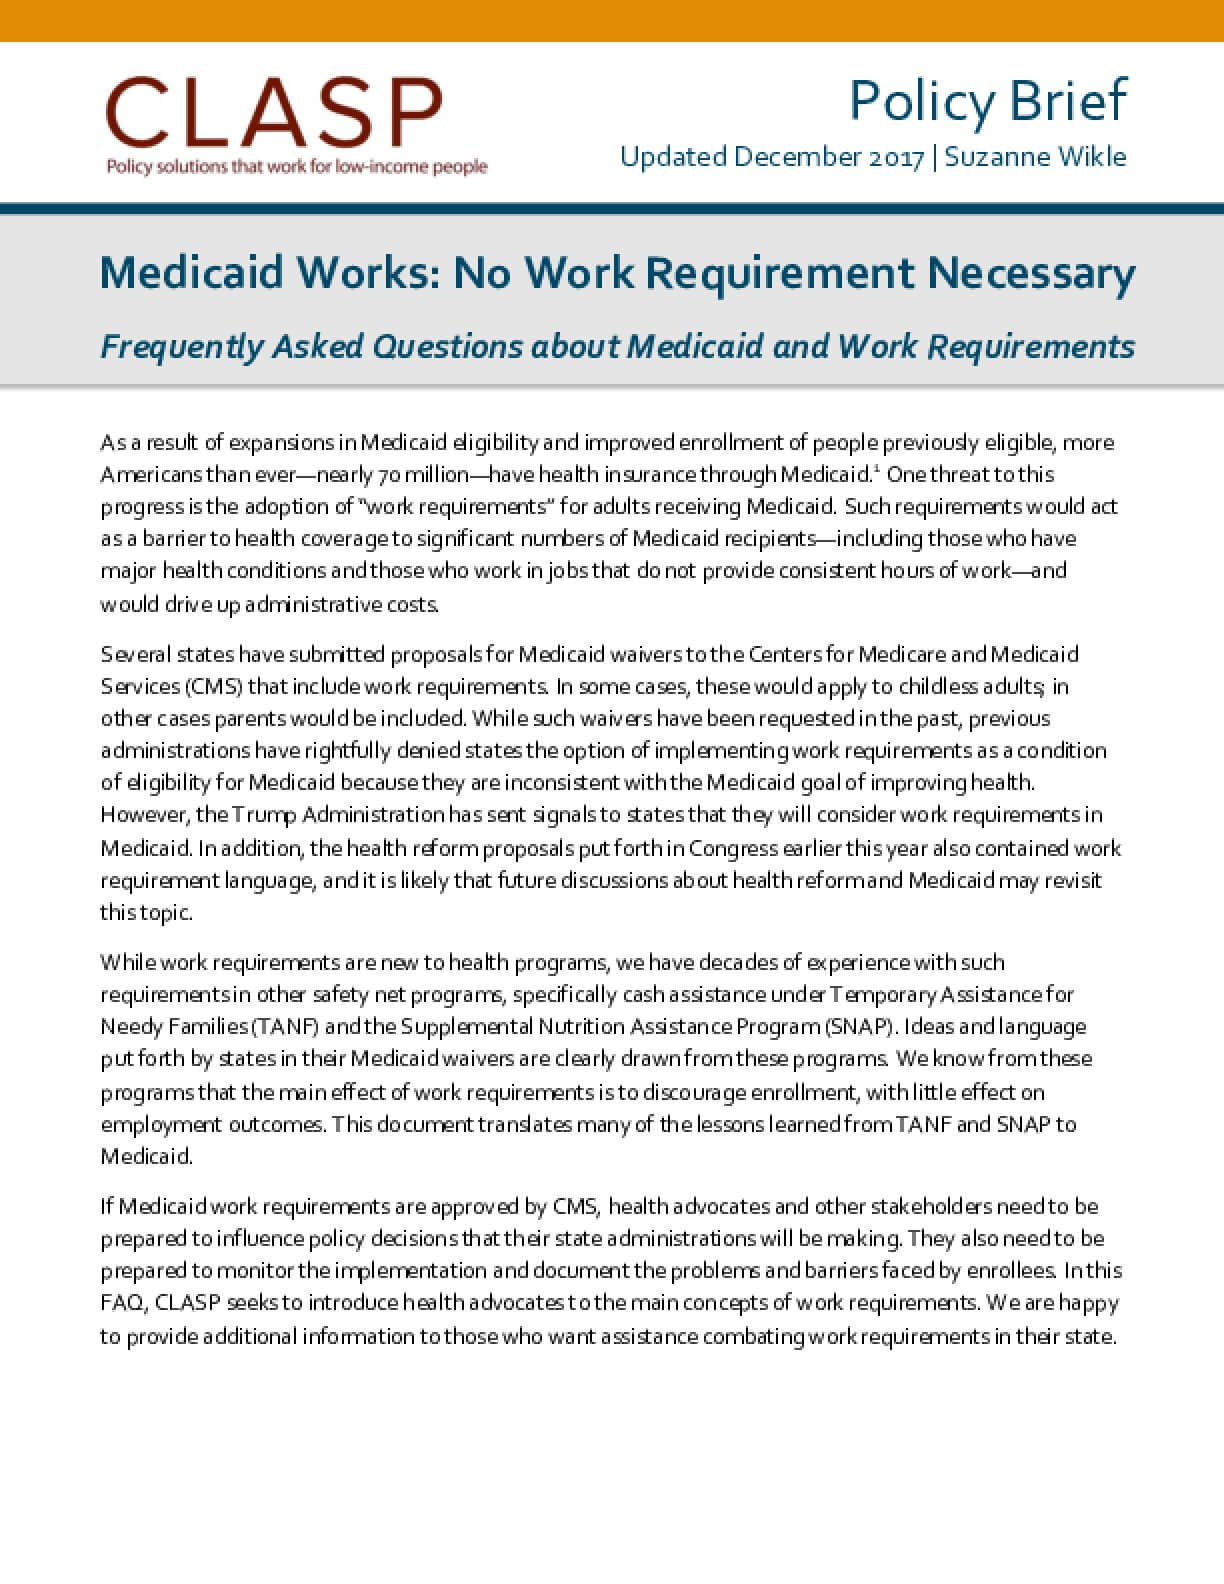 Medicaid Works: No Work Requirement Necessary